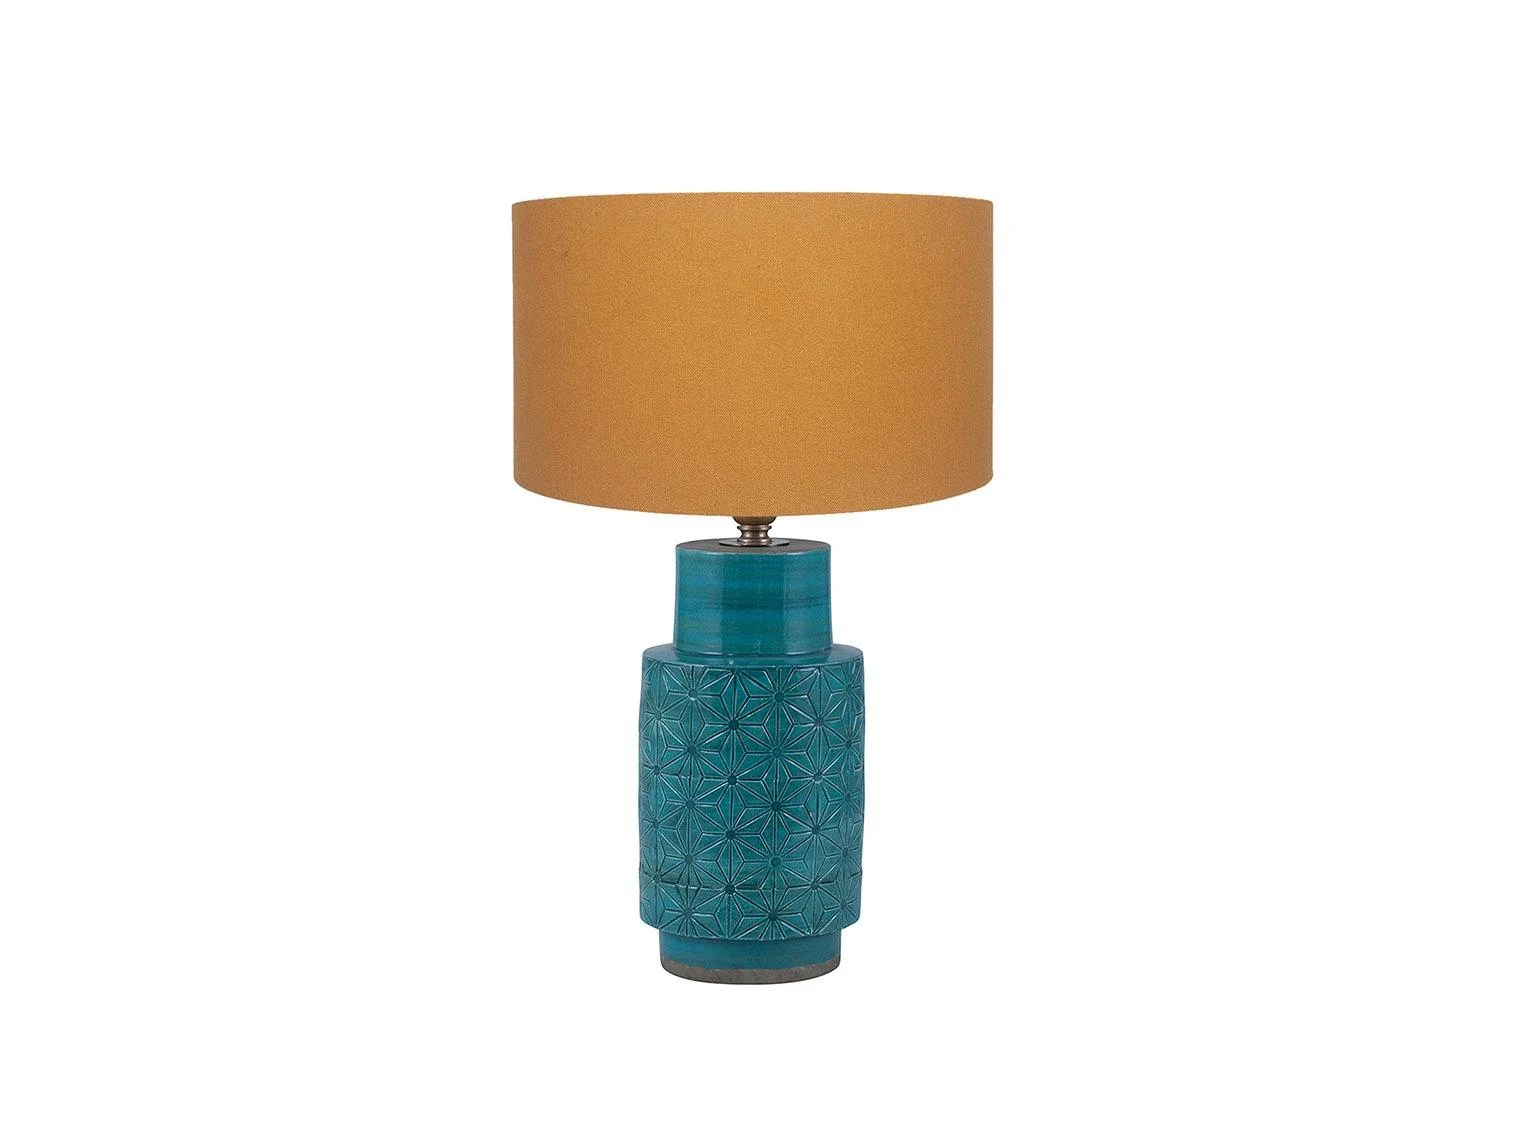 Glass Lamp Tables Ireland Best Bedside Lamps For A Warm Bedroom Glow